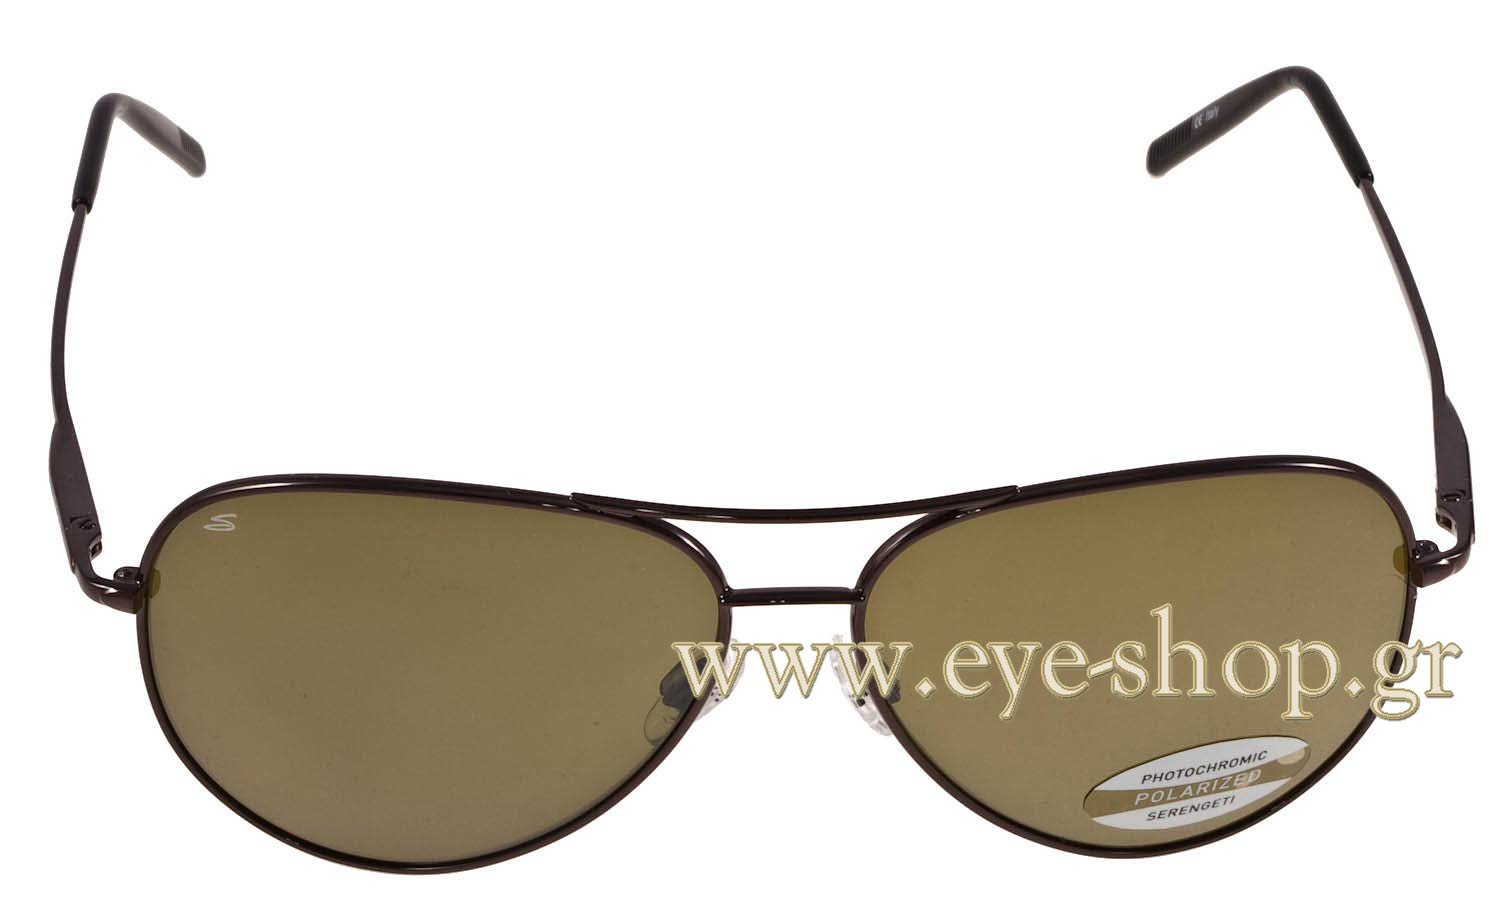 39b3ff9ddd Serengeti 7190 Medium Aviator SUNGLASSES